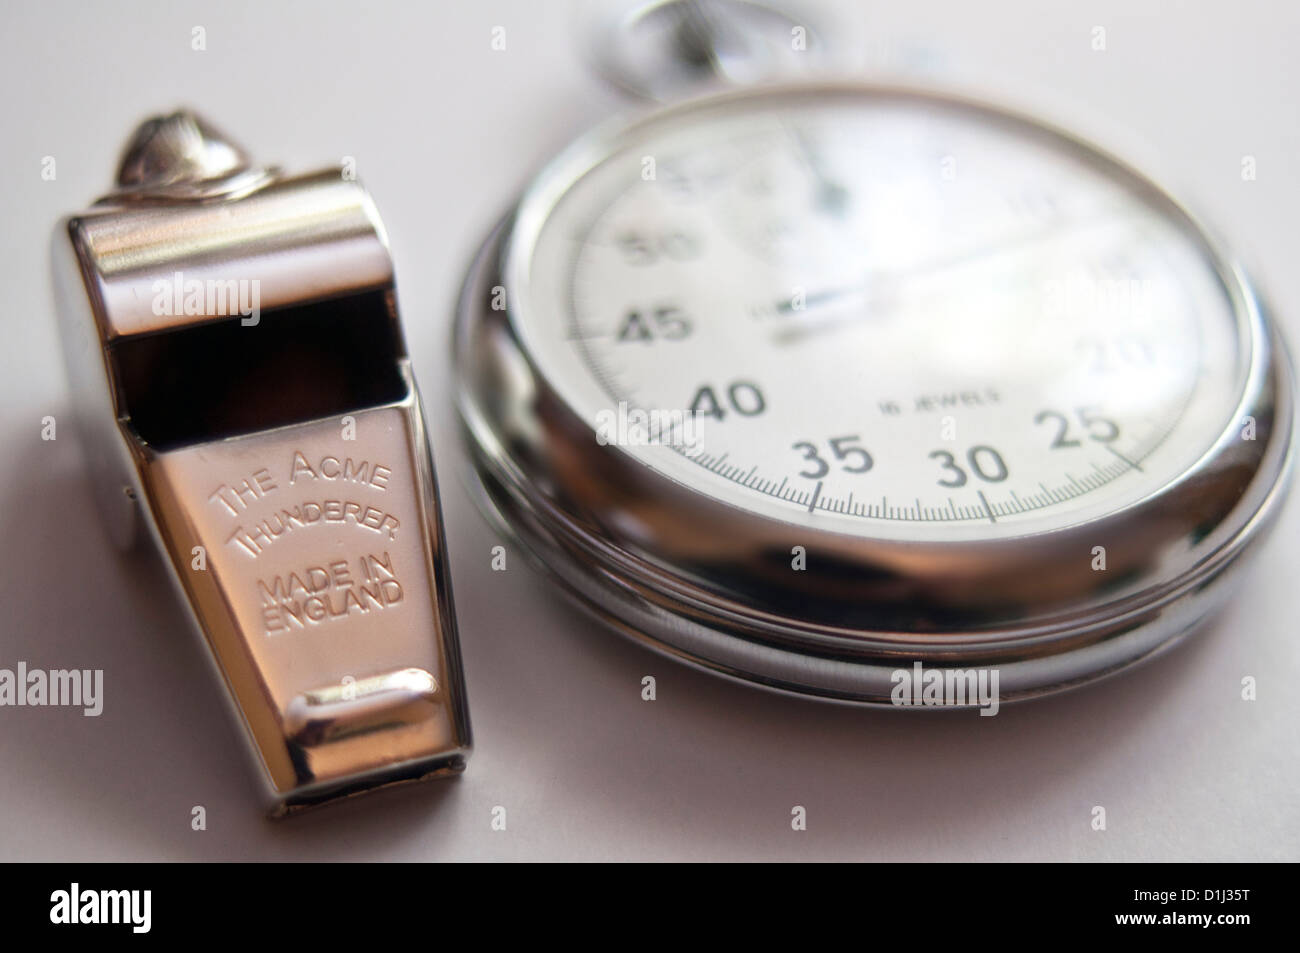 Referees metal whistle The Acme Thunderer and stopwatch - Stock Image